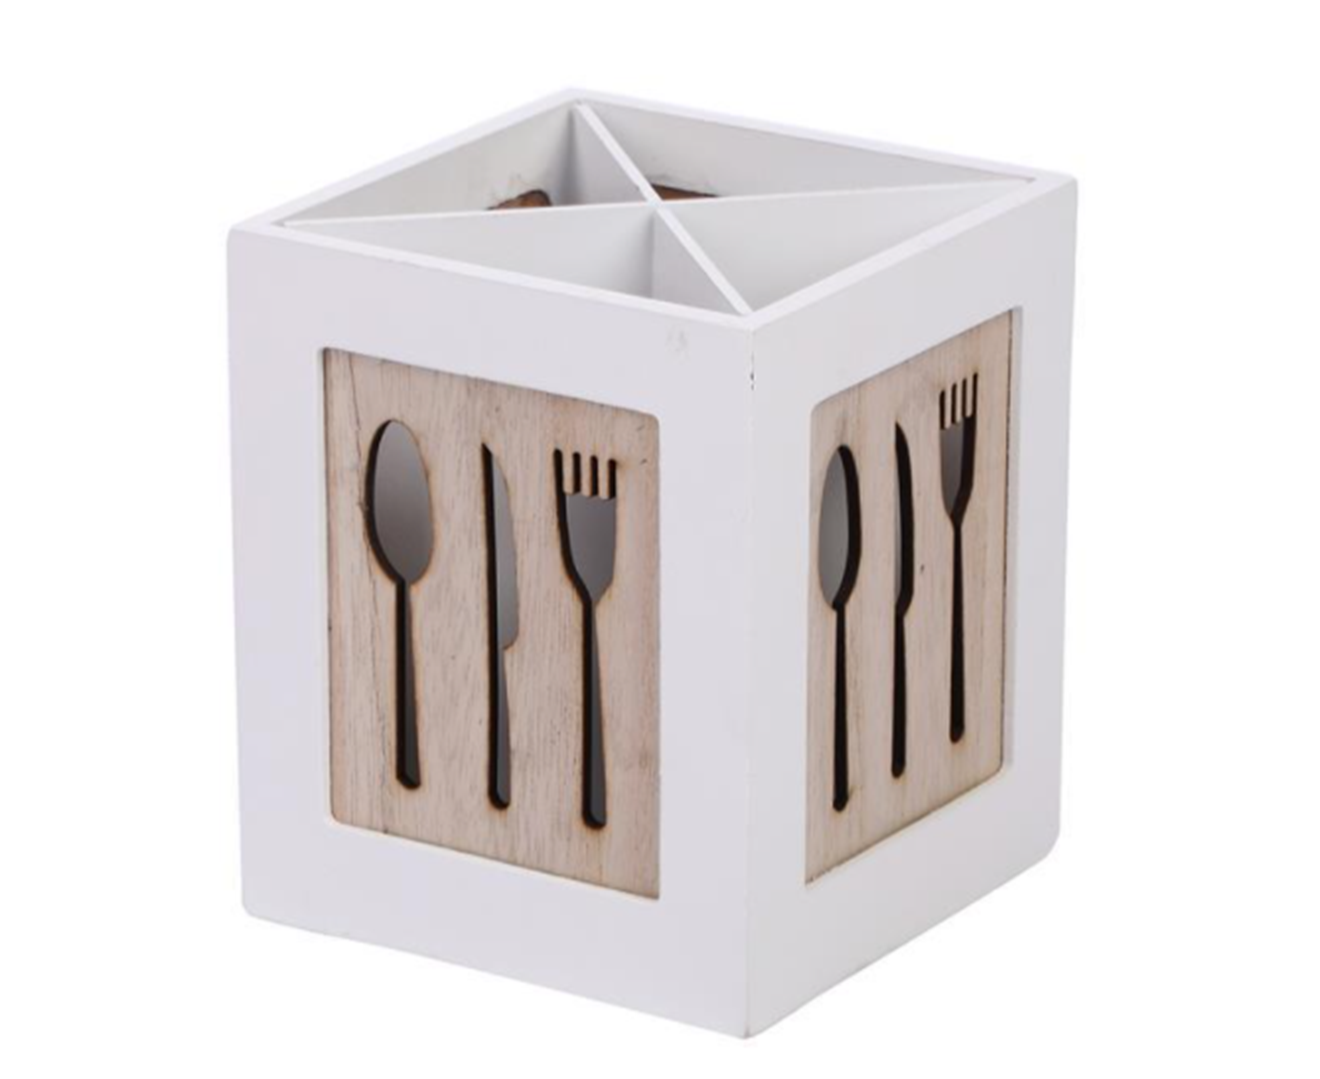 Utensil Holder,Kitchen Cutlery Organizer Solid Wood Bamboo Flatware Caddy for Countertop for Spoons Knives Forks Chopsticks Natural Color-WHITE